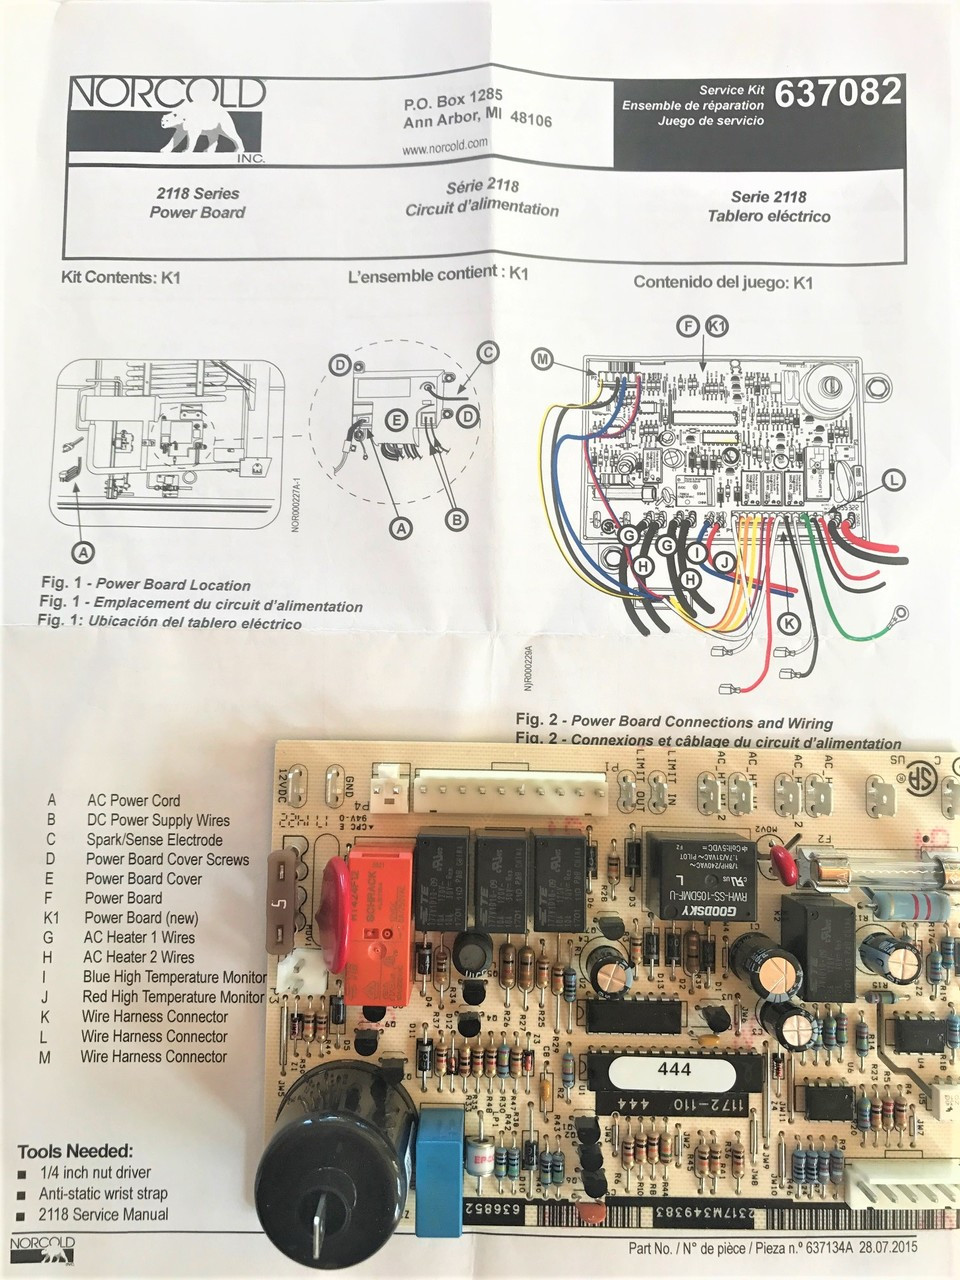 Norcold Power Board 637082  Fits The 2118 Model